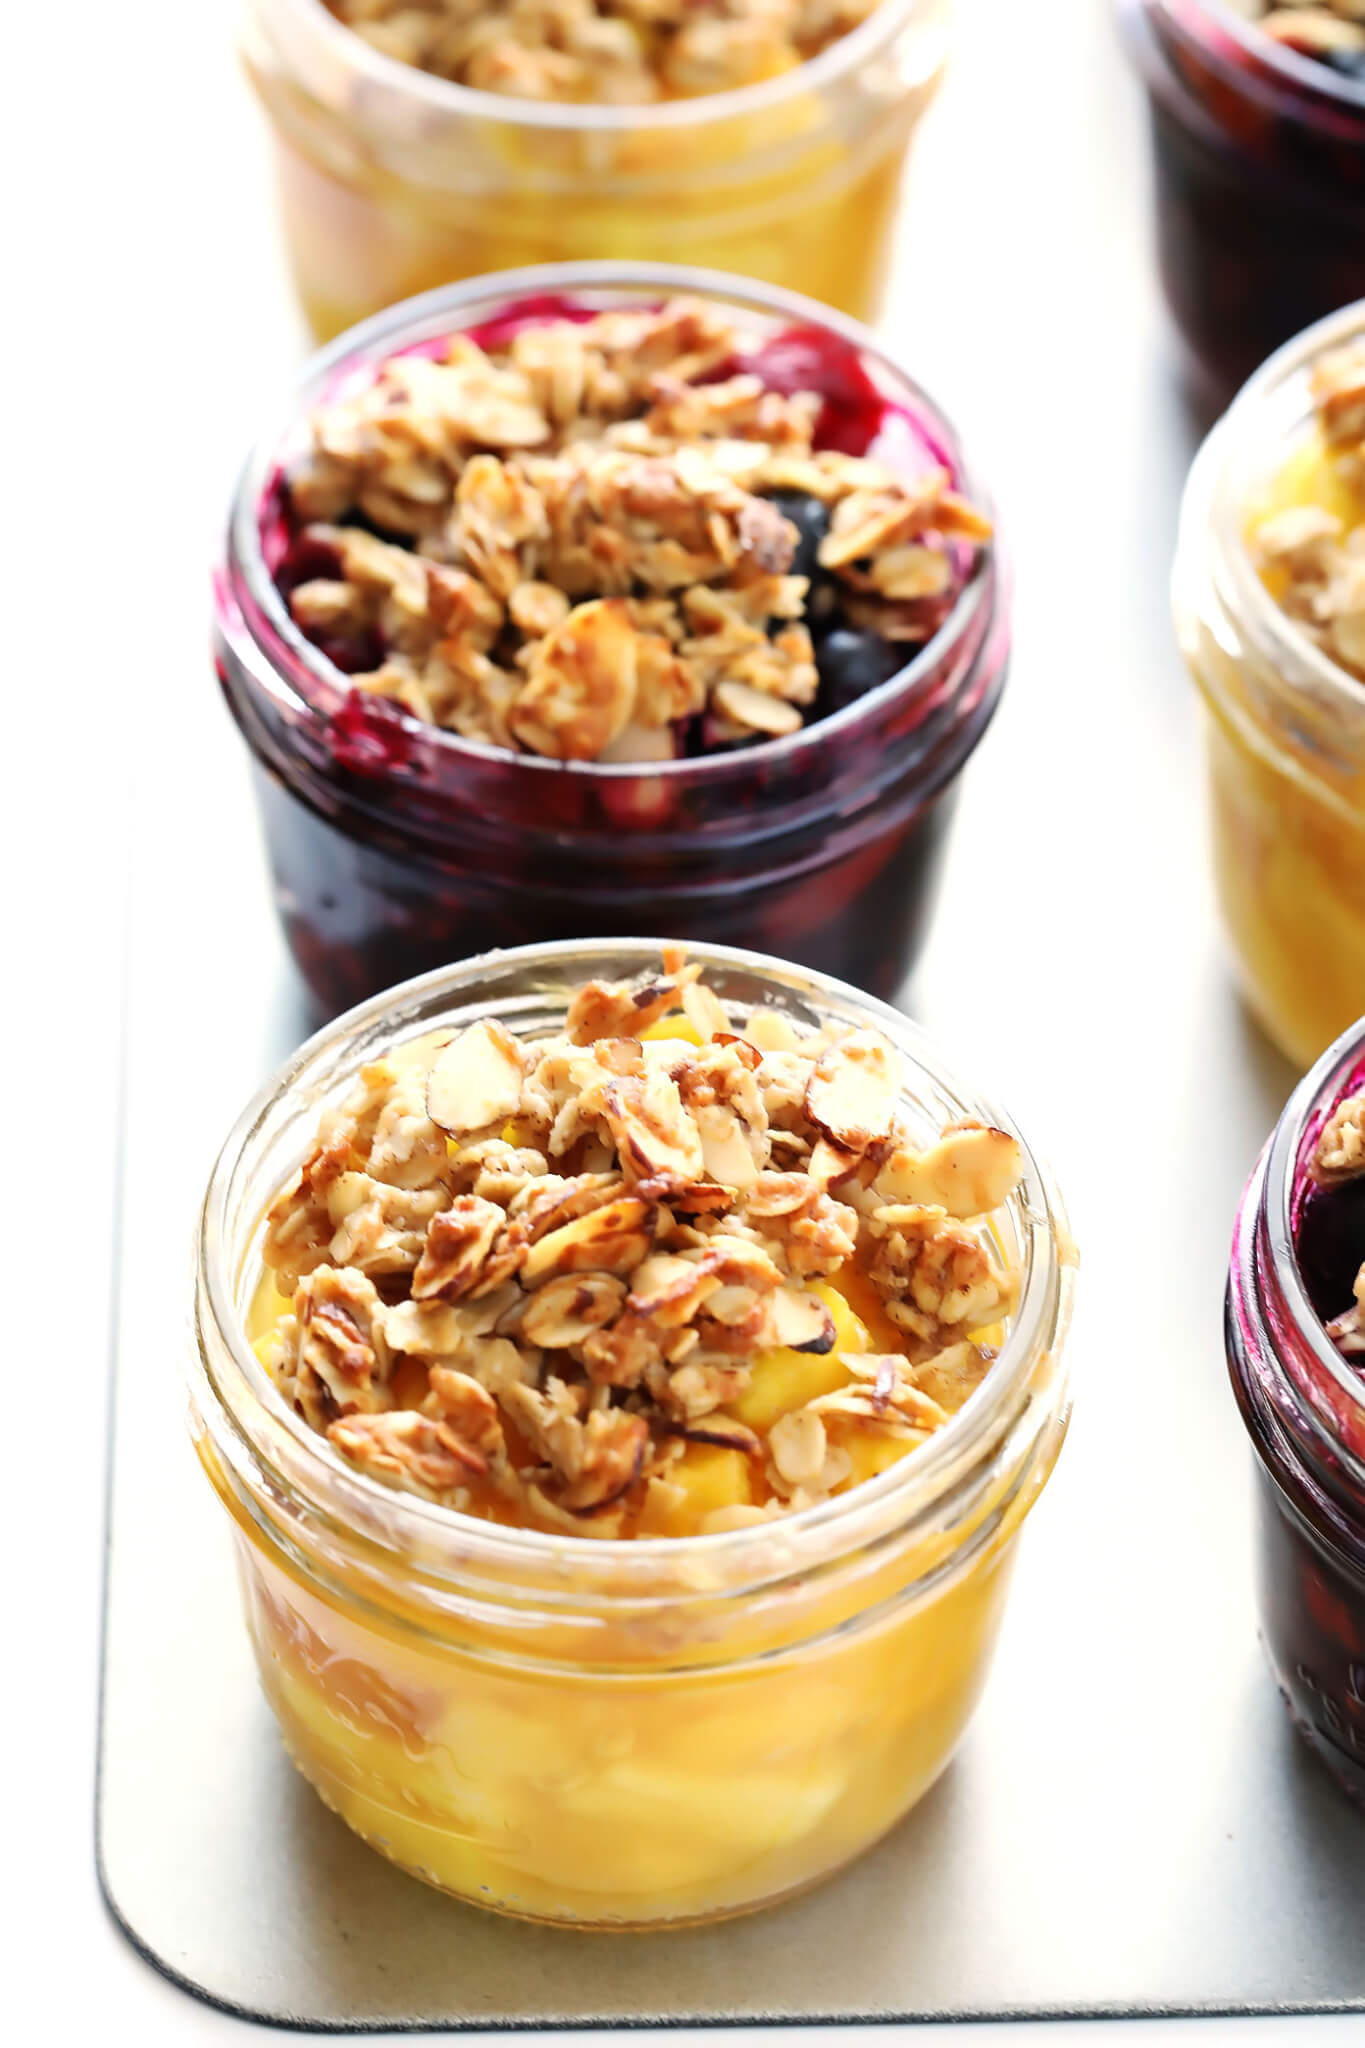 This Mini Mason Jar Fruit Crisps recipe can be made with your favorite seasonal fruit, they're topped with a delicious oatmeal-almond crumble, and they are SO delicious! Feel free to make them with blueberries, strawberries, cherries, peaches, pineapple, apples, pears...you name it! They're one of my favorite easy dessert recipes. | gimmesomeoven.com (Gluten-Free / Vegetarian)